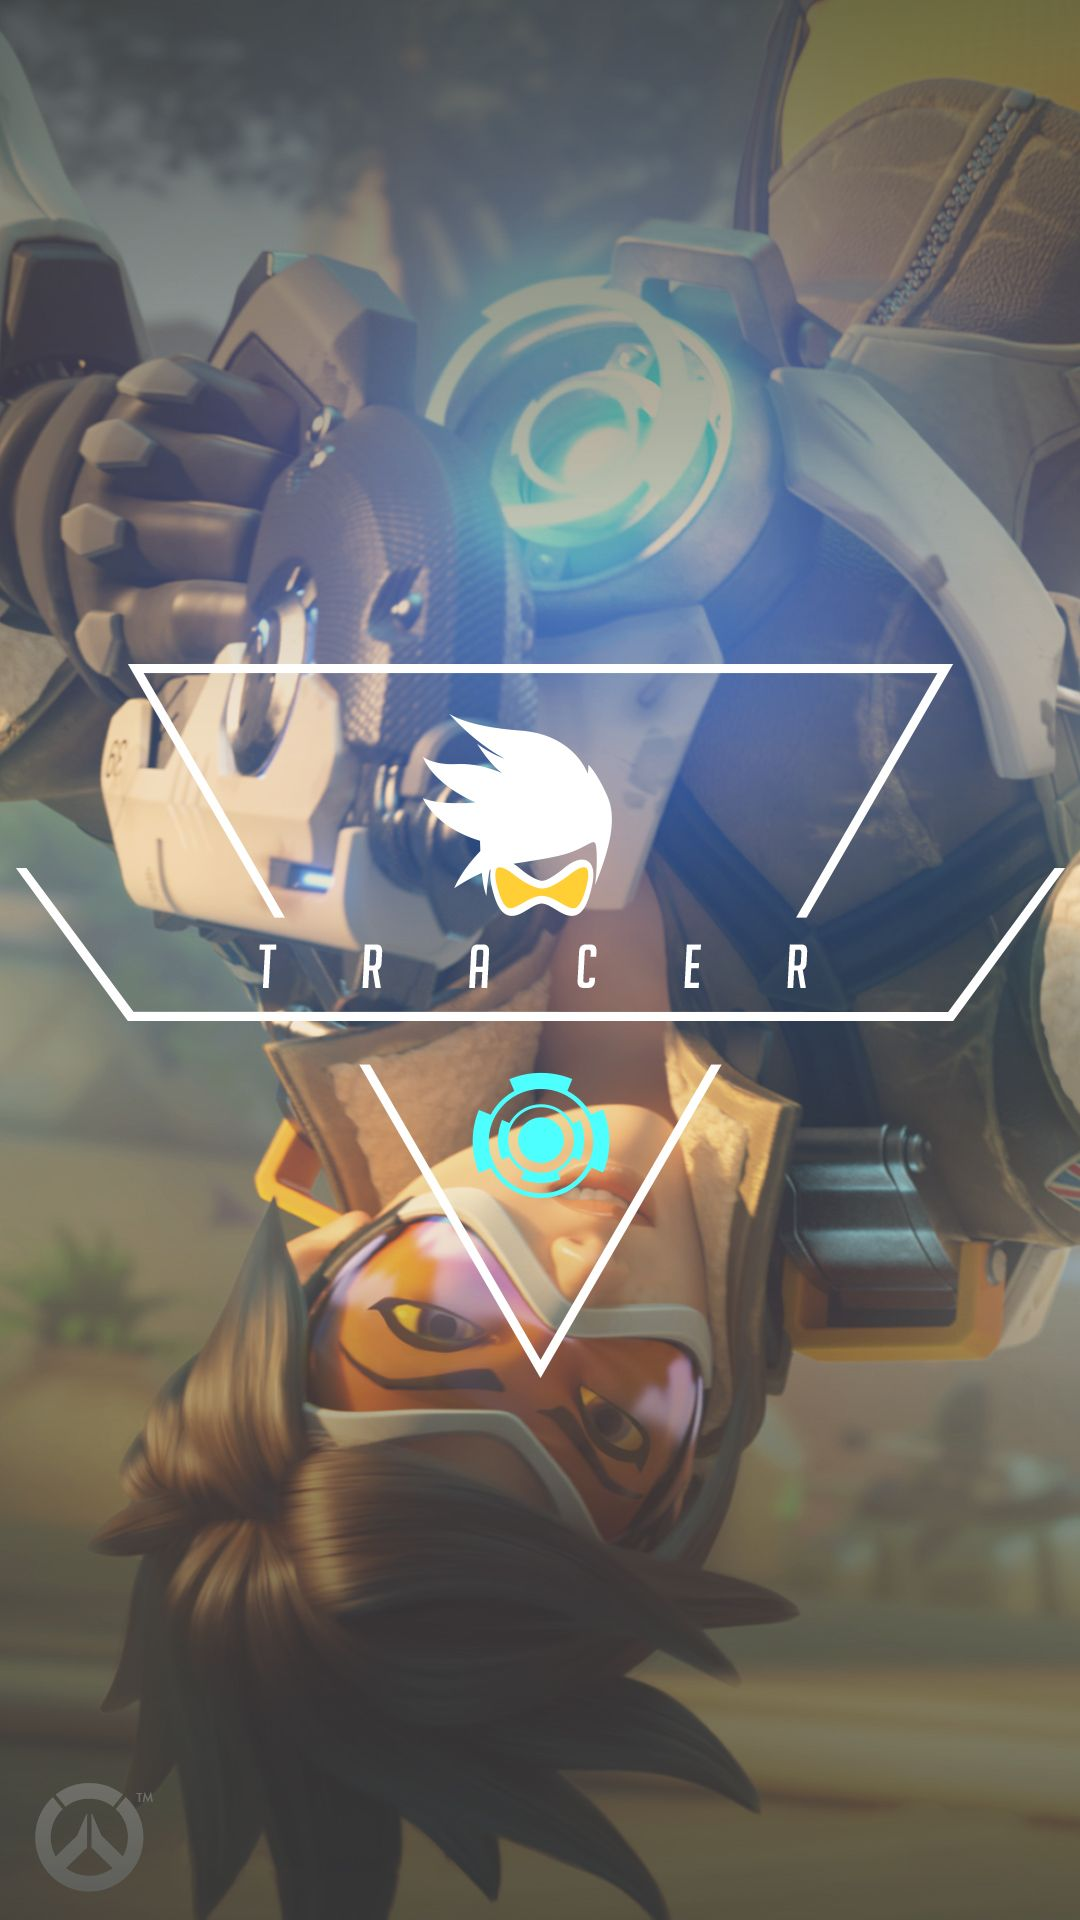 Overwatch Wallpaper Overwatch Wallpapers Overwatch Tracer Overwatch